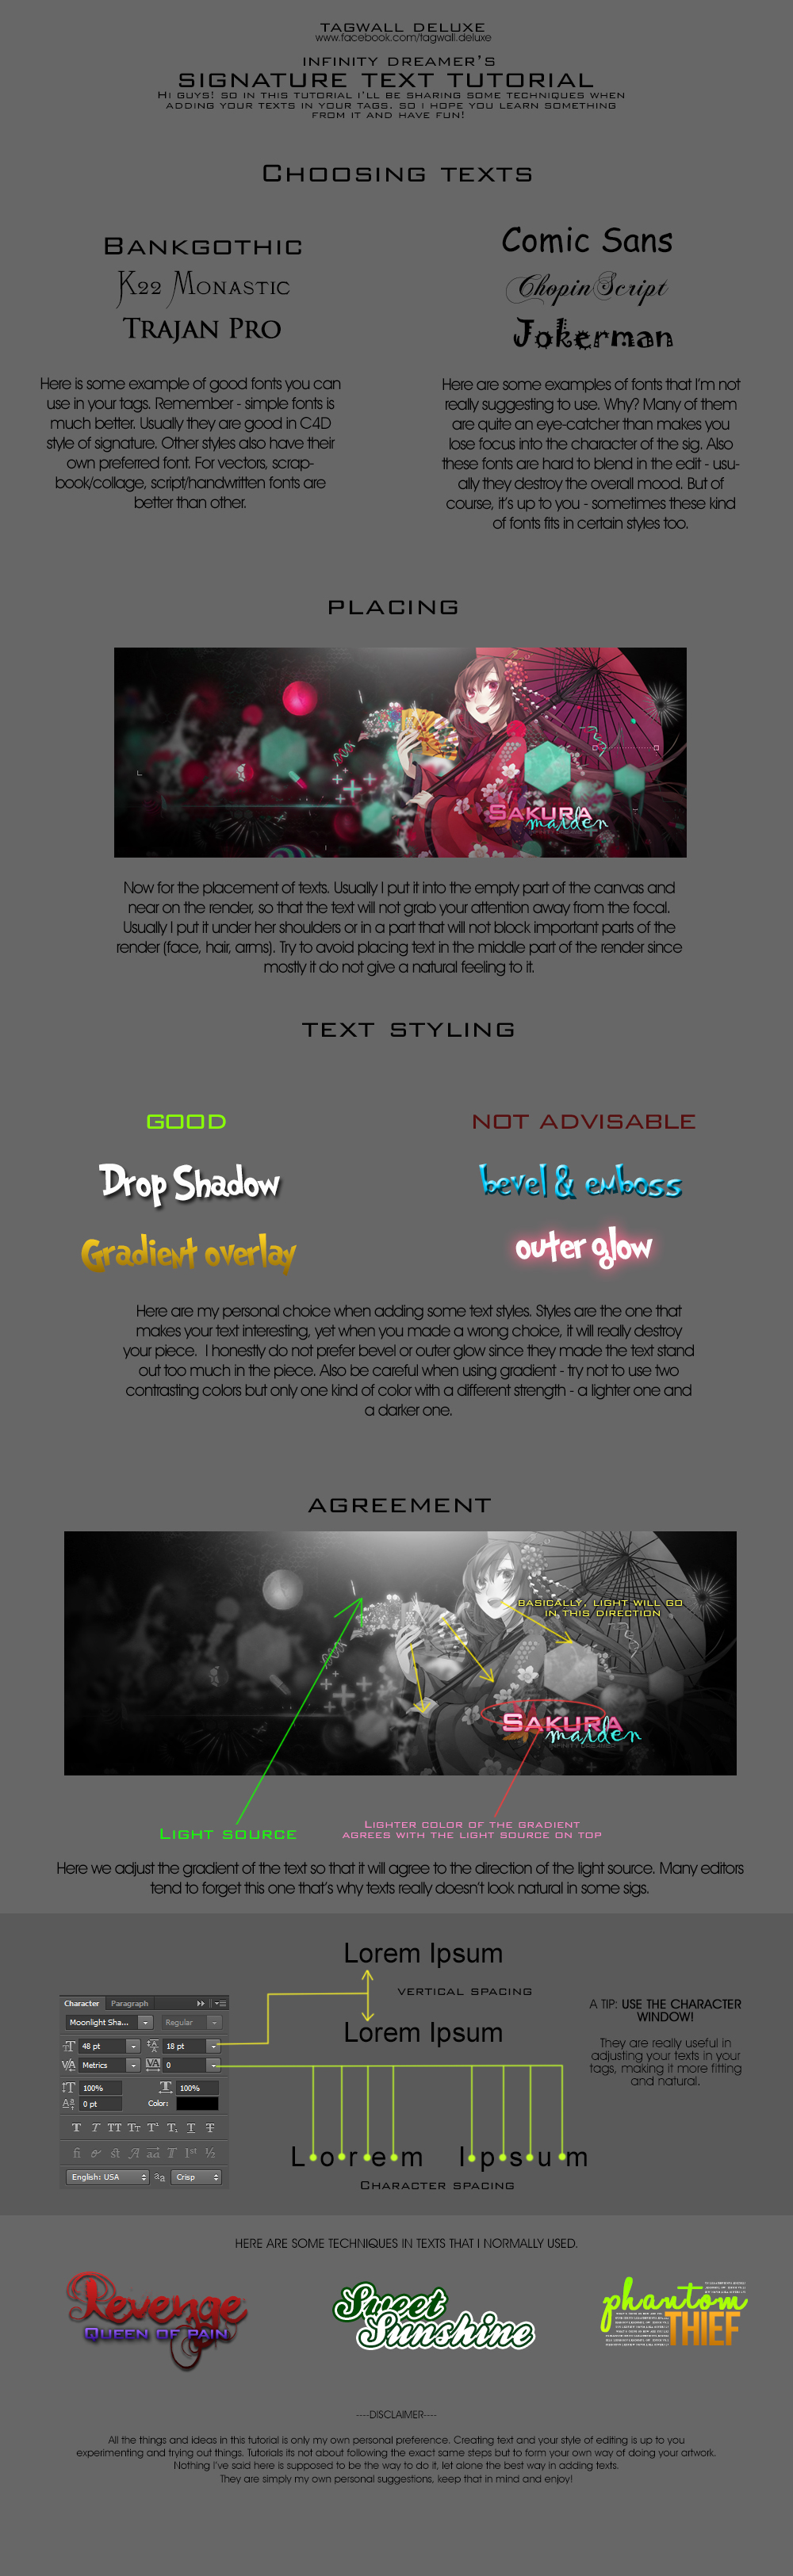 signature_text_tutorial_by_infinity_drea